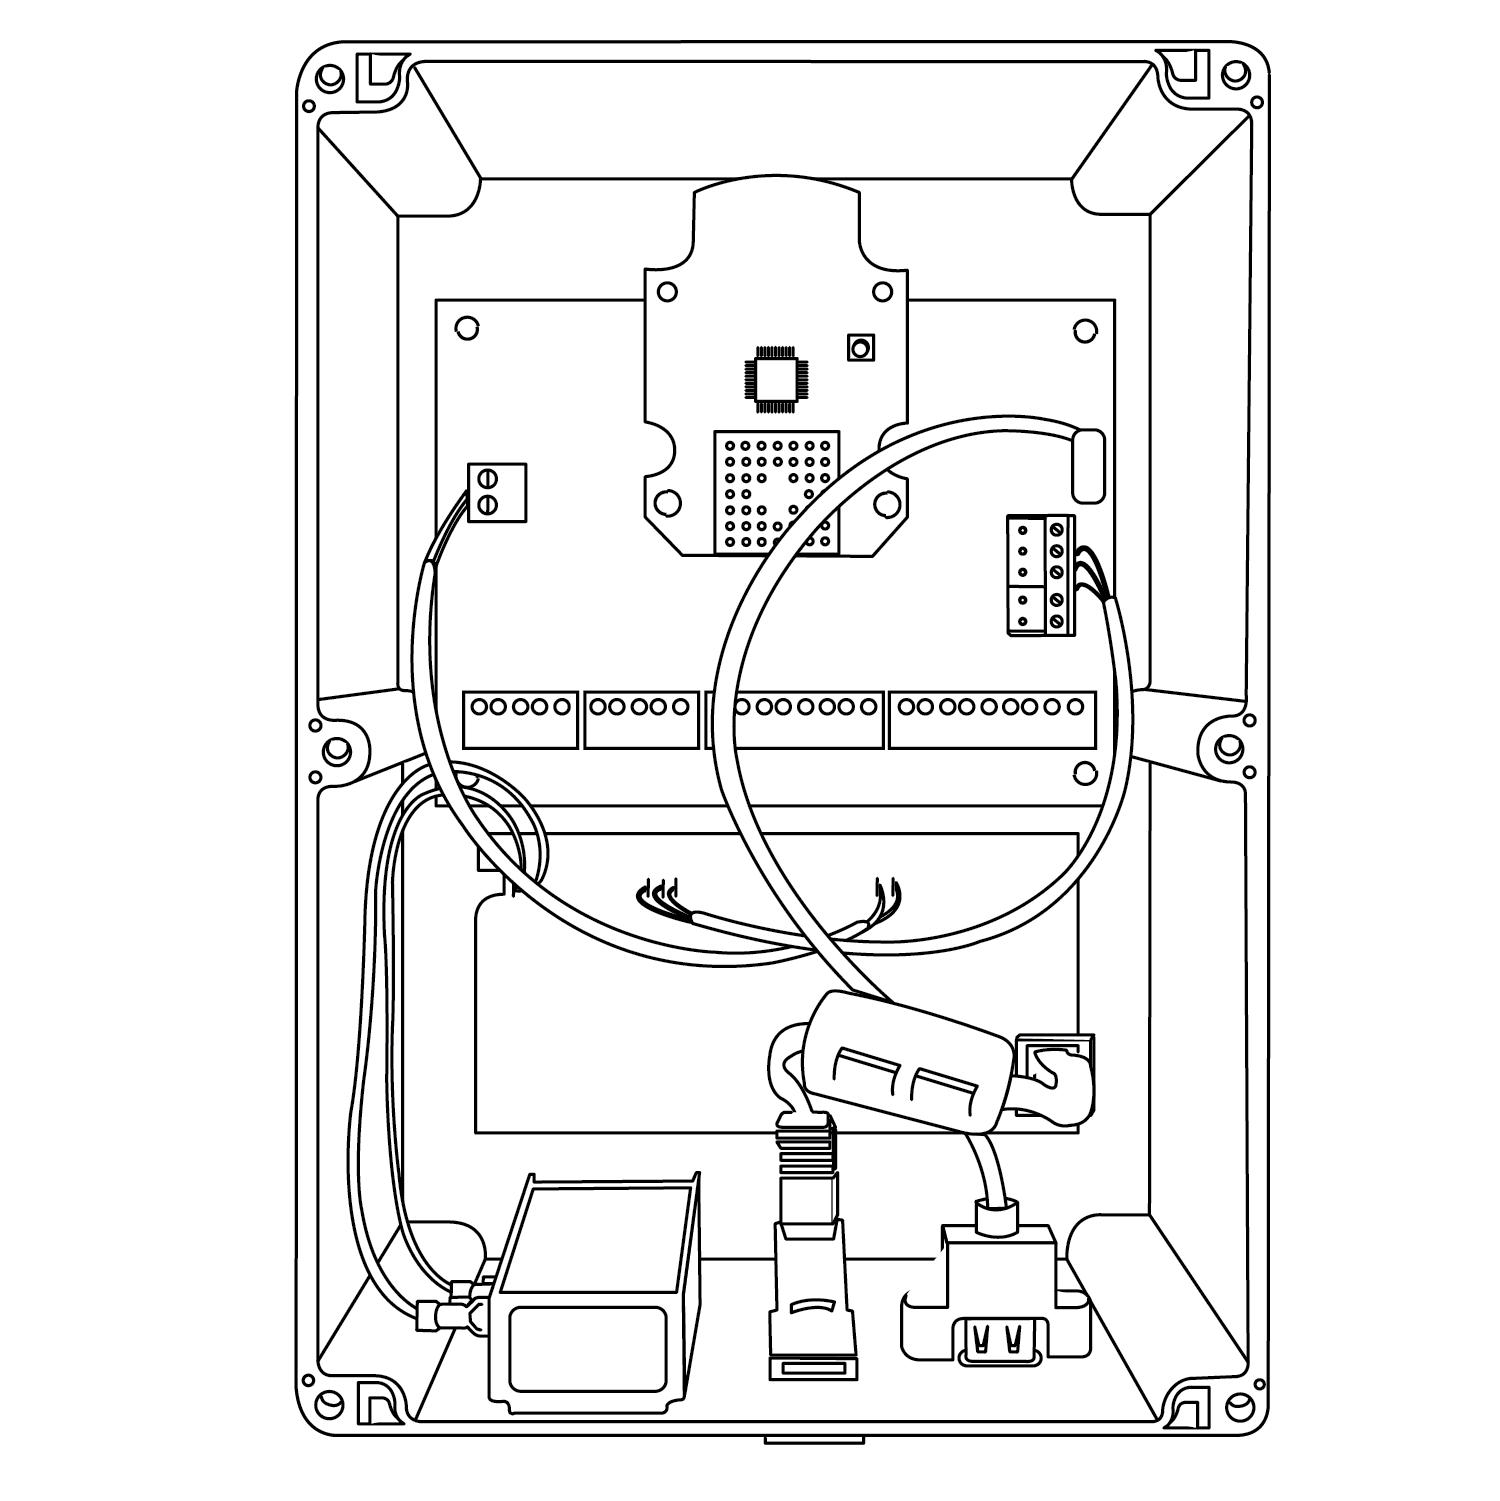 Schlage 650 Series Key Switch Wiring Diagram : 44 Wiring